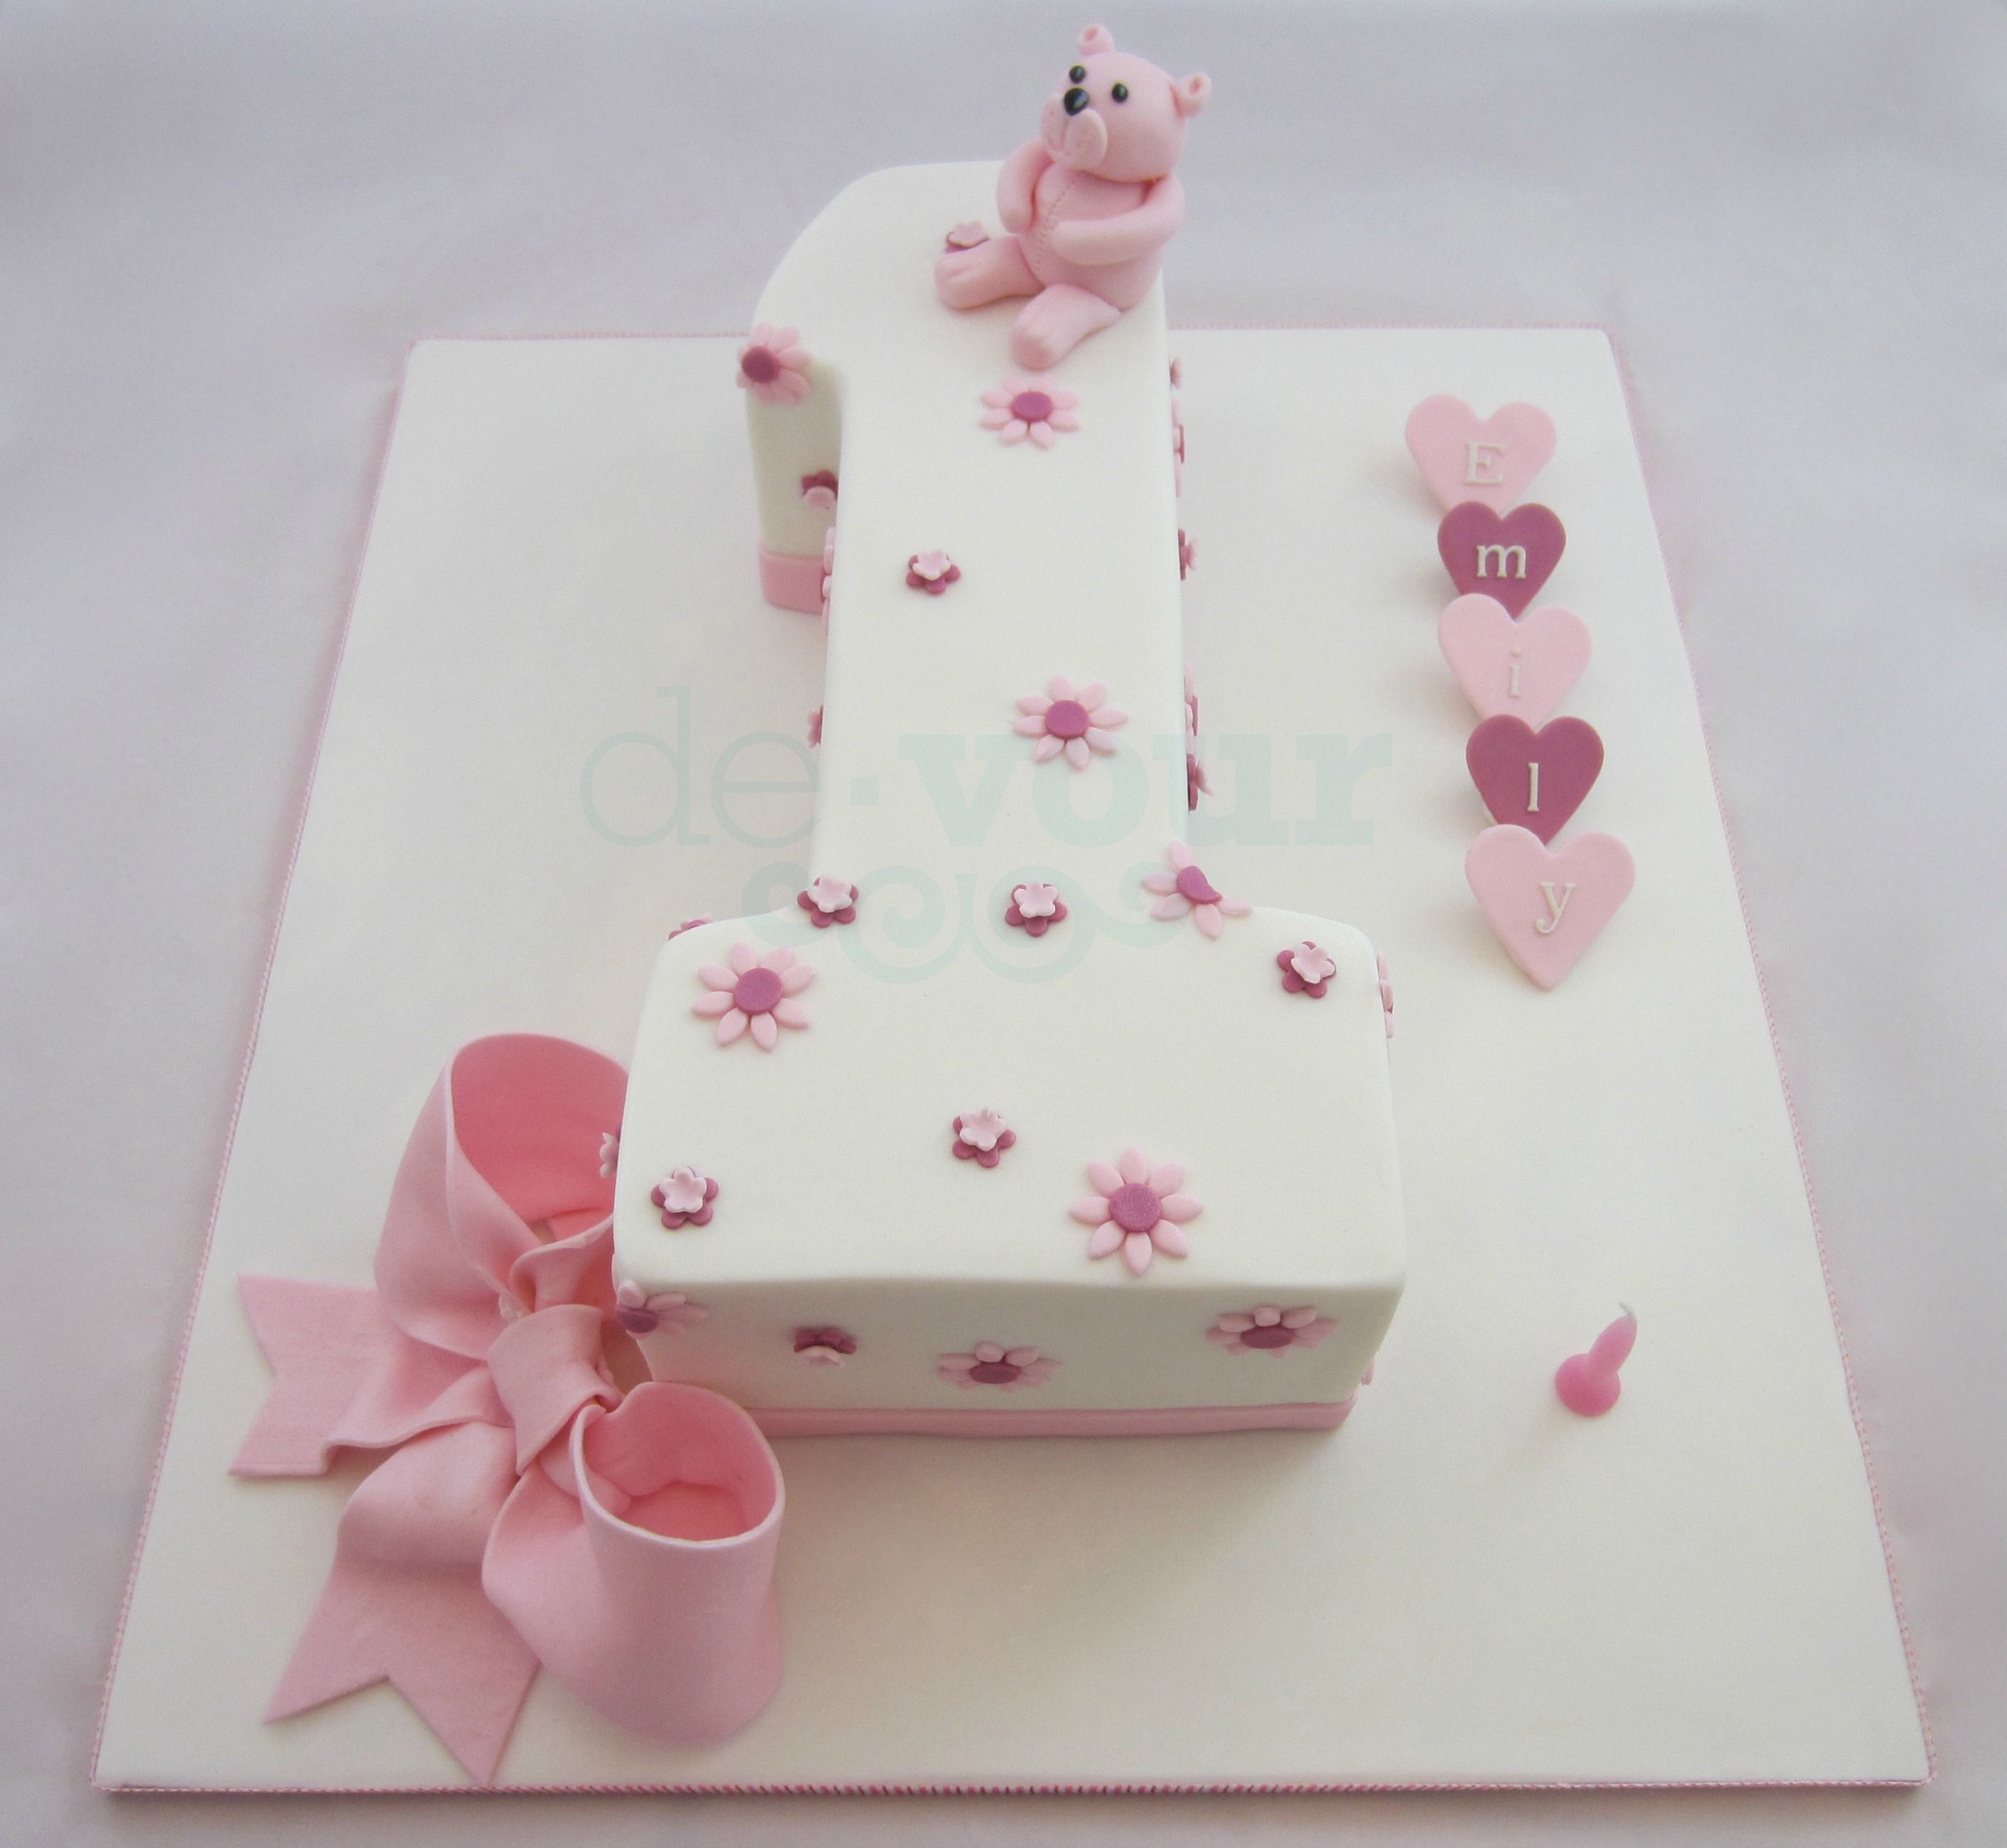 Cake Decorating Tips And Numbers : Number 1 cake, first birthday cake, number one cake, girl first birthday cake Our cakes ...